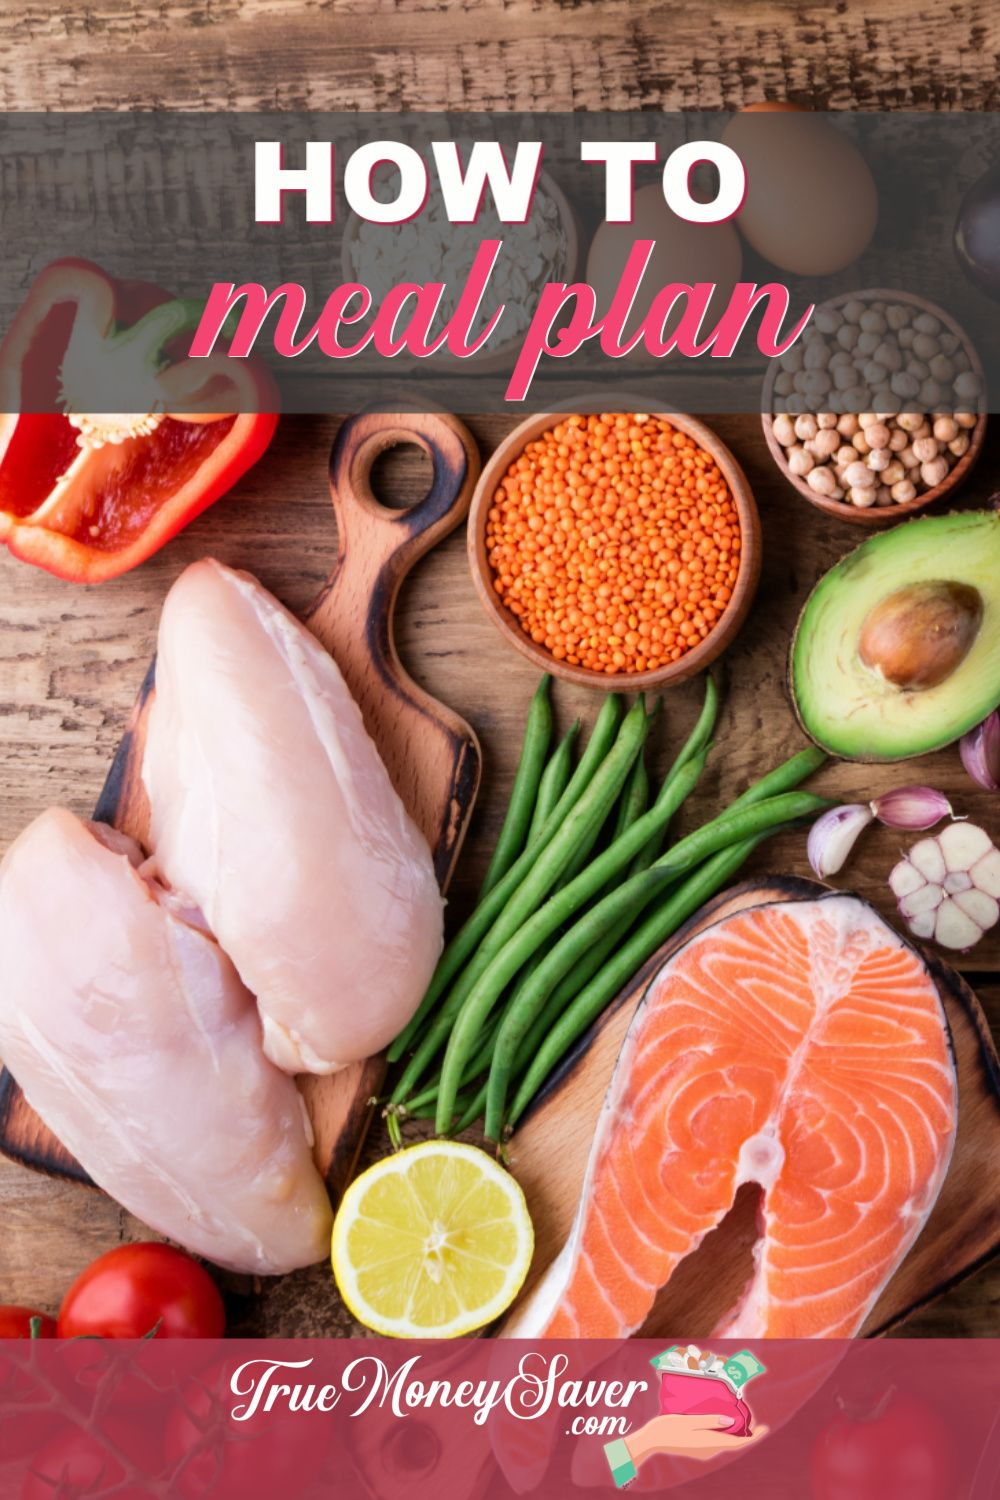 How To Build The Ultimate Weekly Meal Plan Template (Free Download) Get ready to build the ultimate meal plan with this free weekly meal plan template. These simple weekly meal plan template printables will get you started on making your meal plan the best for your family. Start creating with this awesome weekly meal plan template!